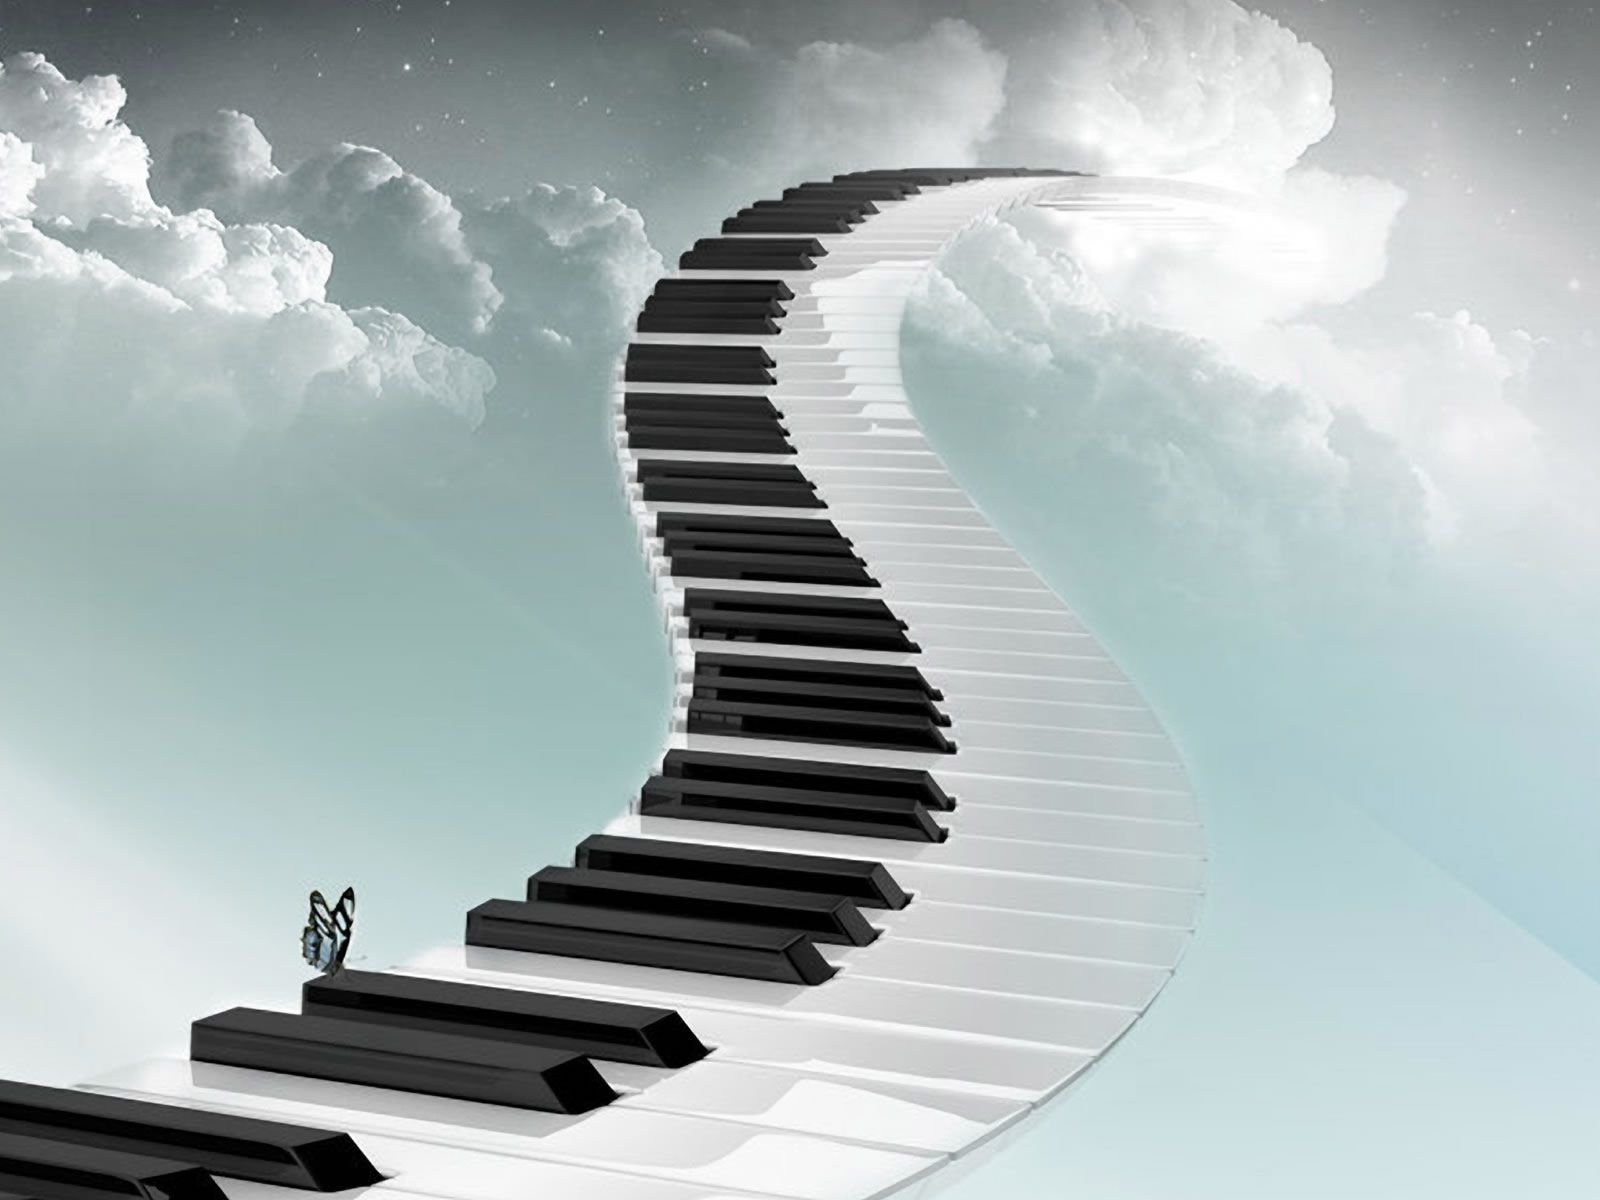 Piano Wallpaper And Background Image